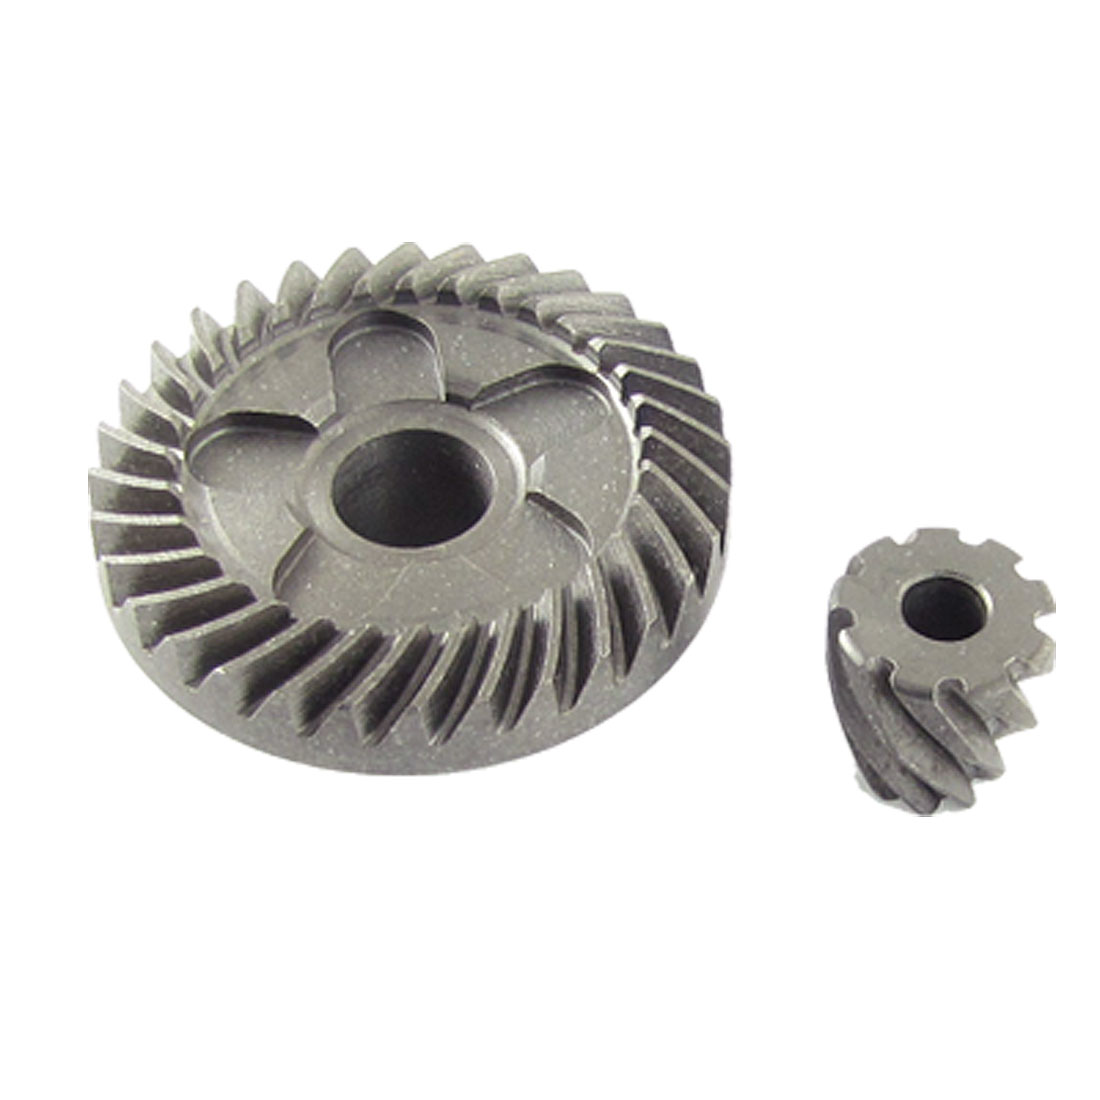 2 Pcs Angle Grinder Spiral Bevel Gears for Bosch GWS 6-100